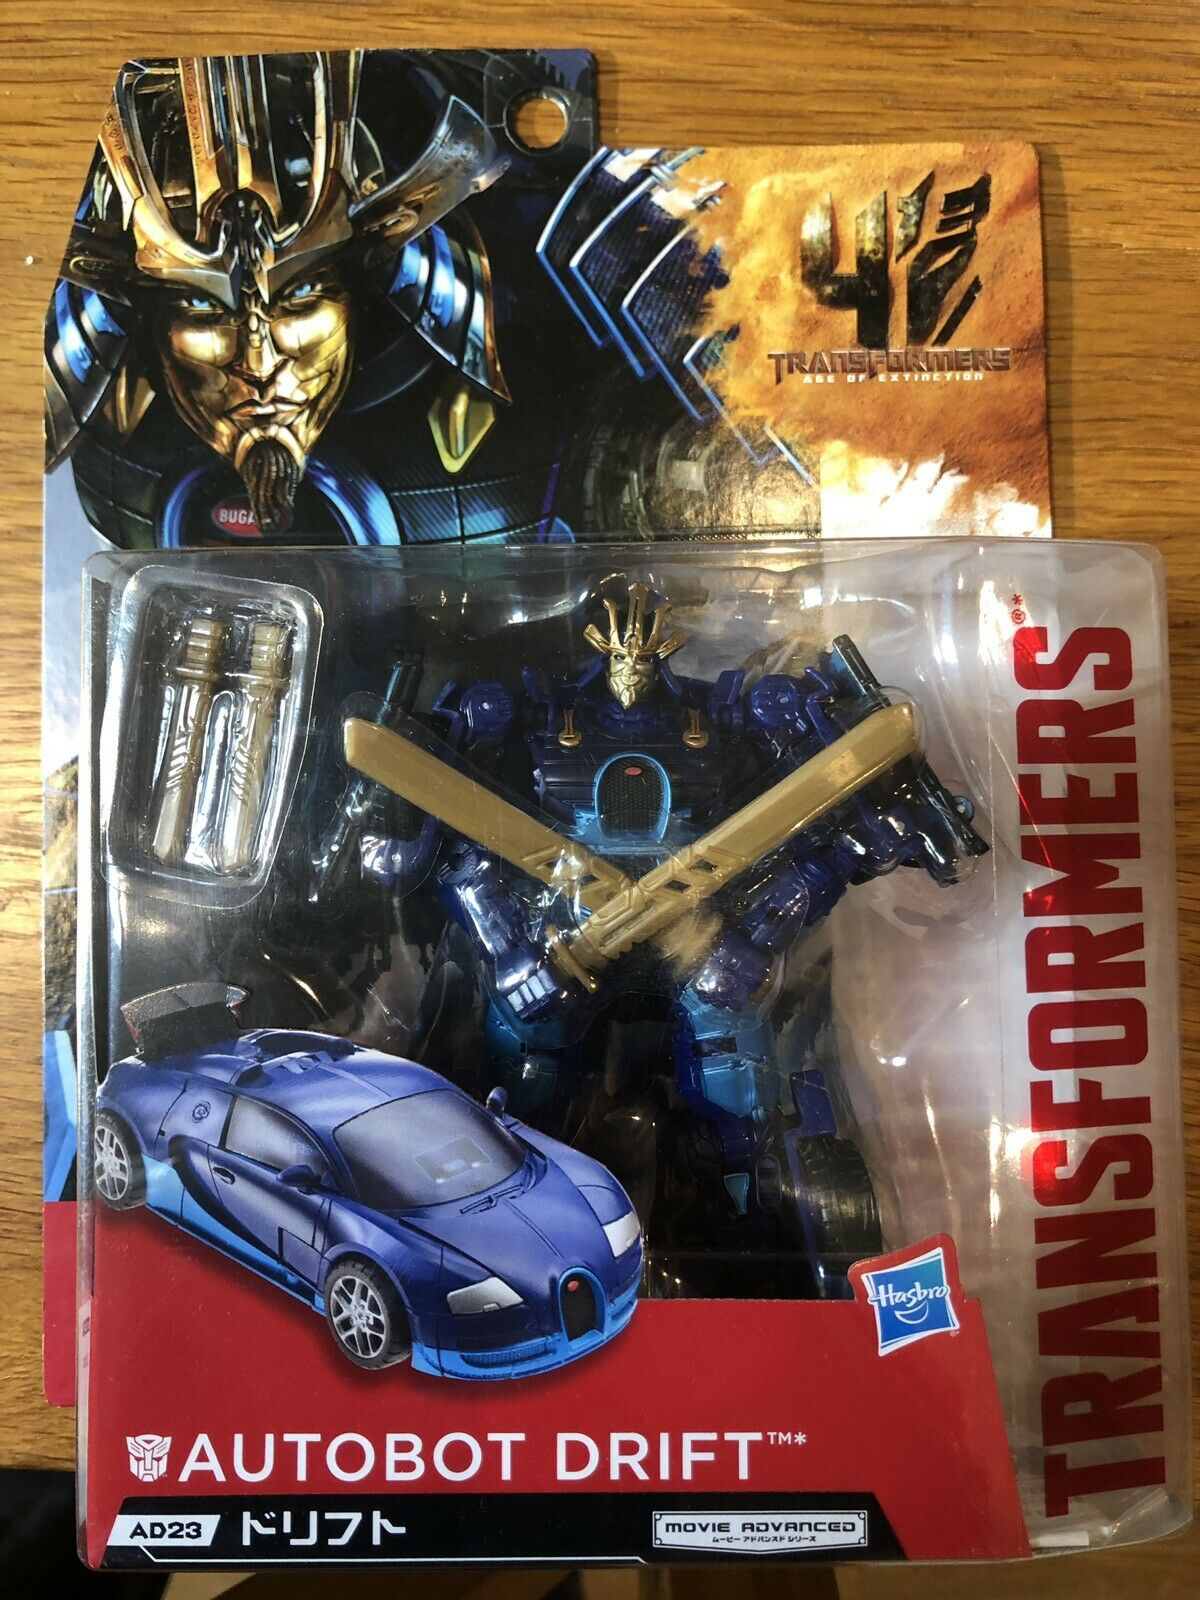 Transformers Hasbro AOE Carbot Drift AD23 MISB